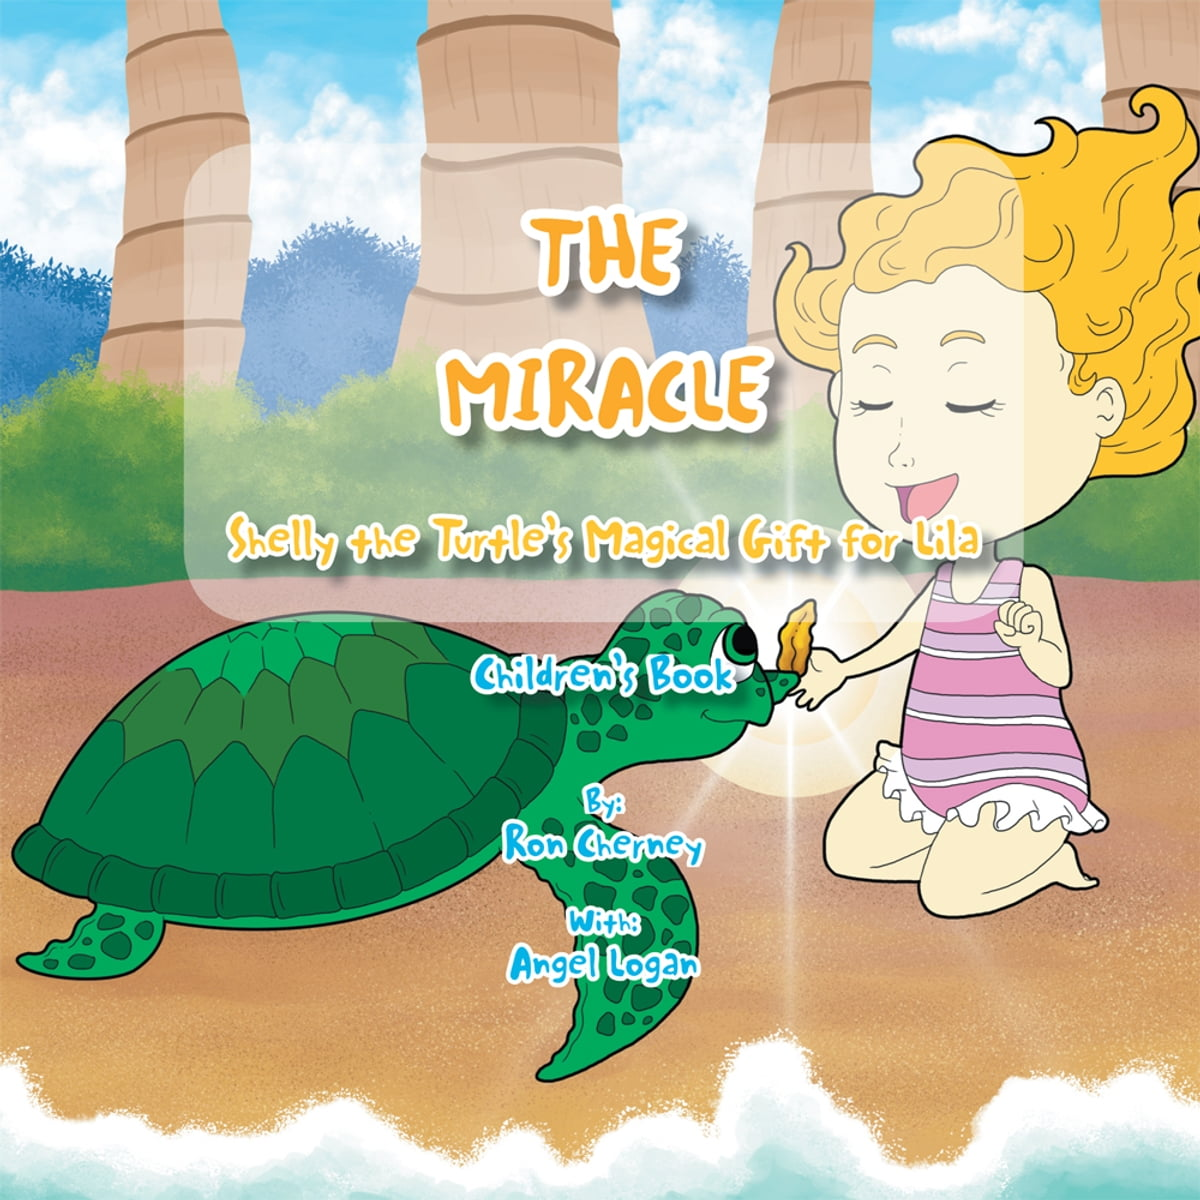 The miracle ebook by ron cherney with angel logan 9781477165256 the miracle ebook by ron cherney with angel logan 9781477165256 rakuten kobo fandeluxe Document